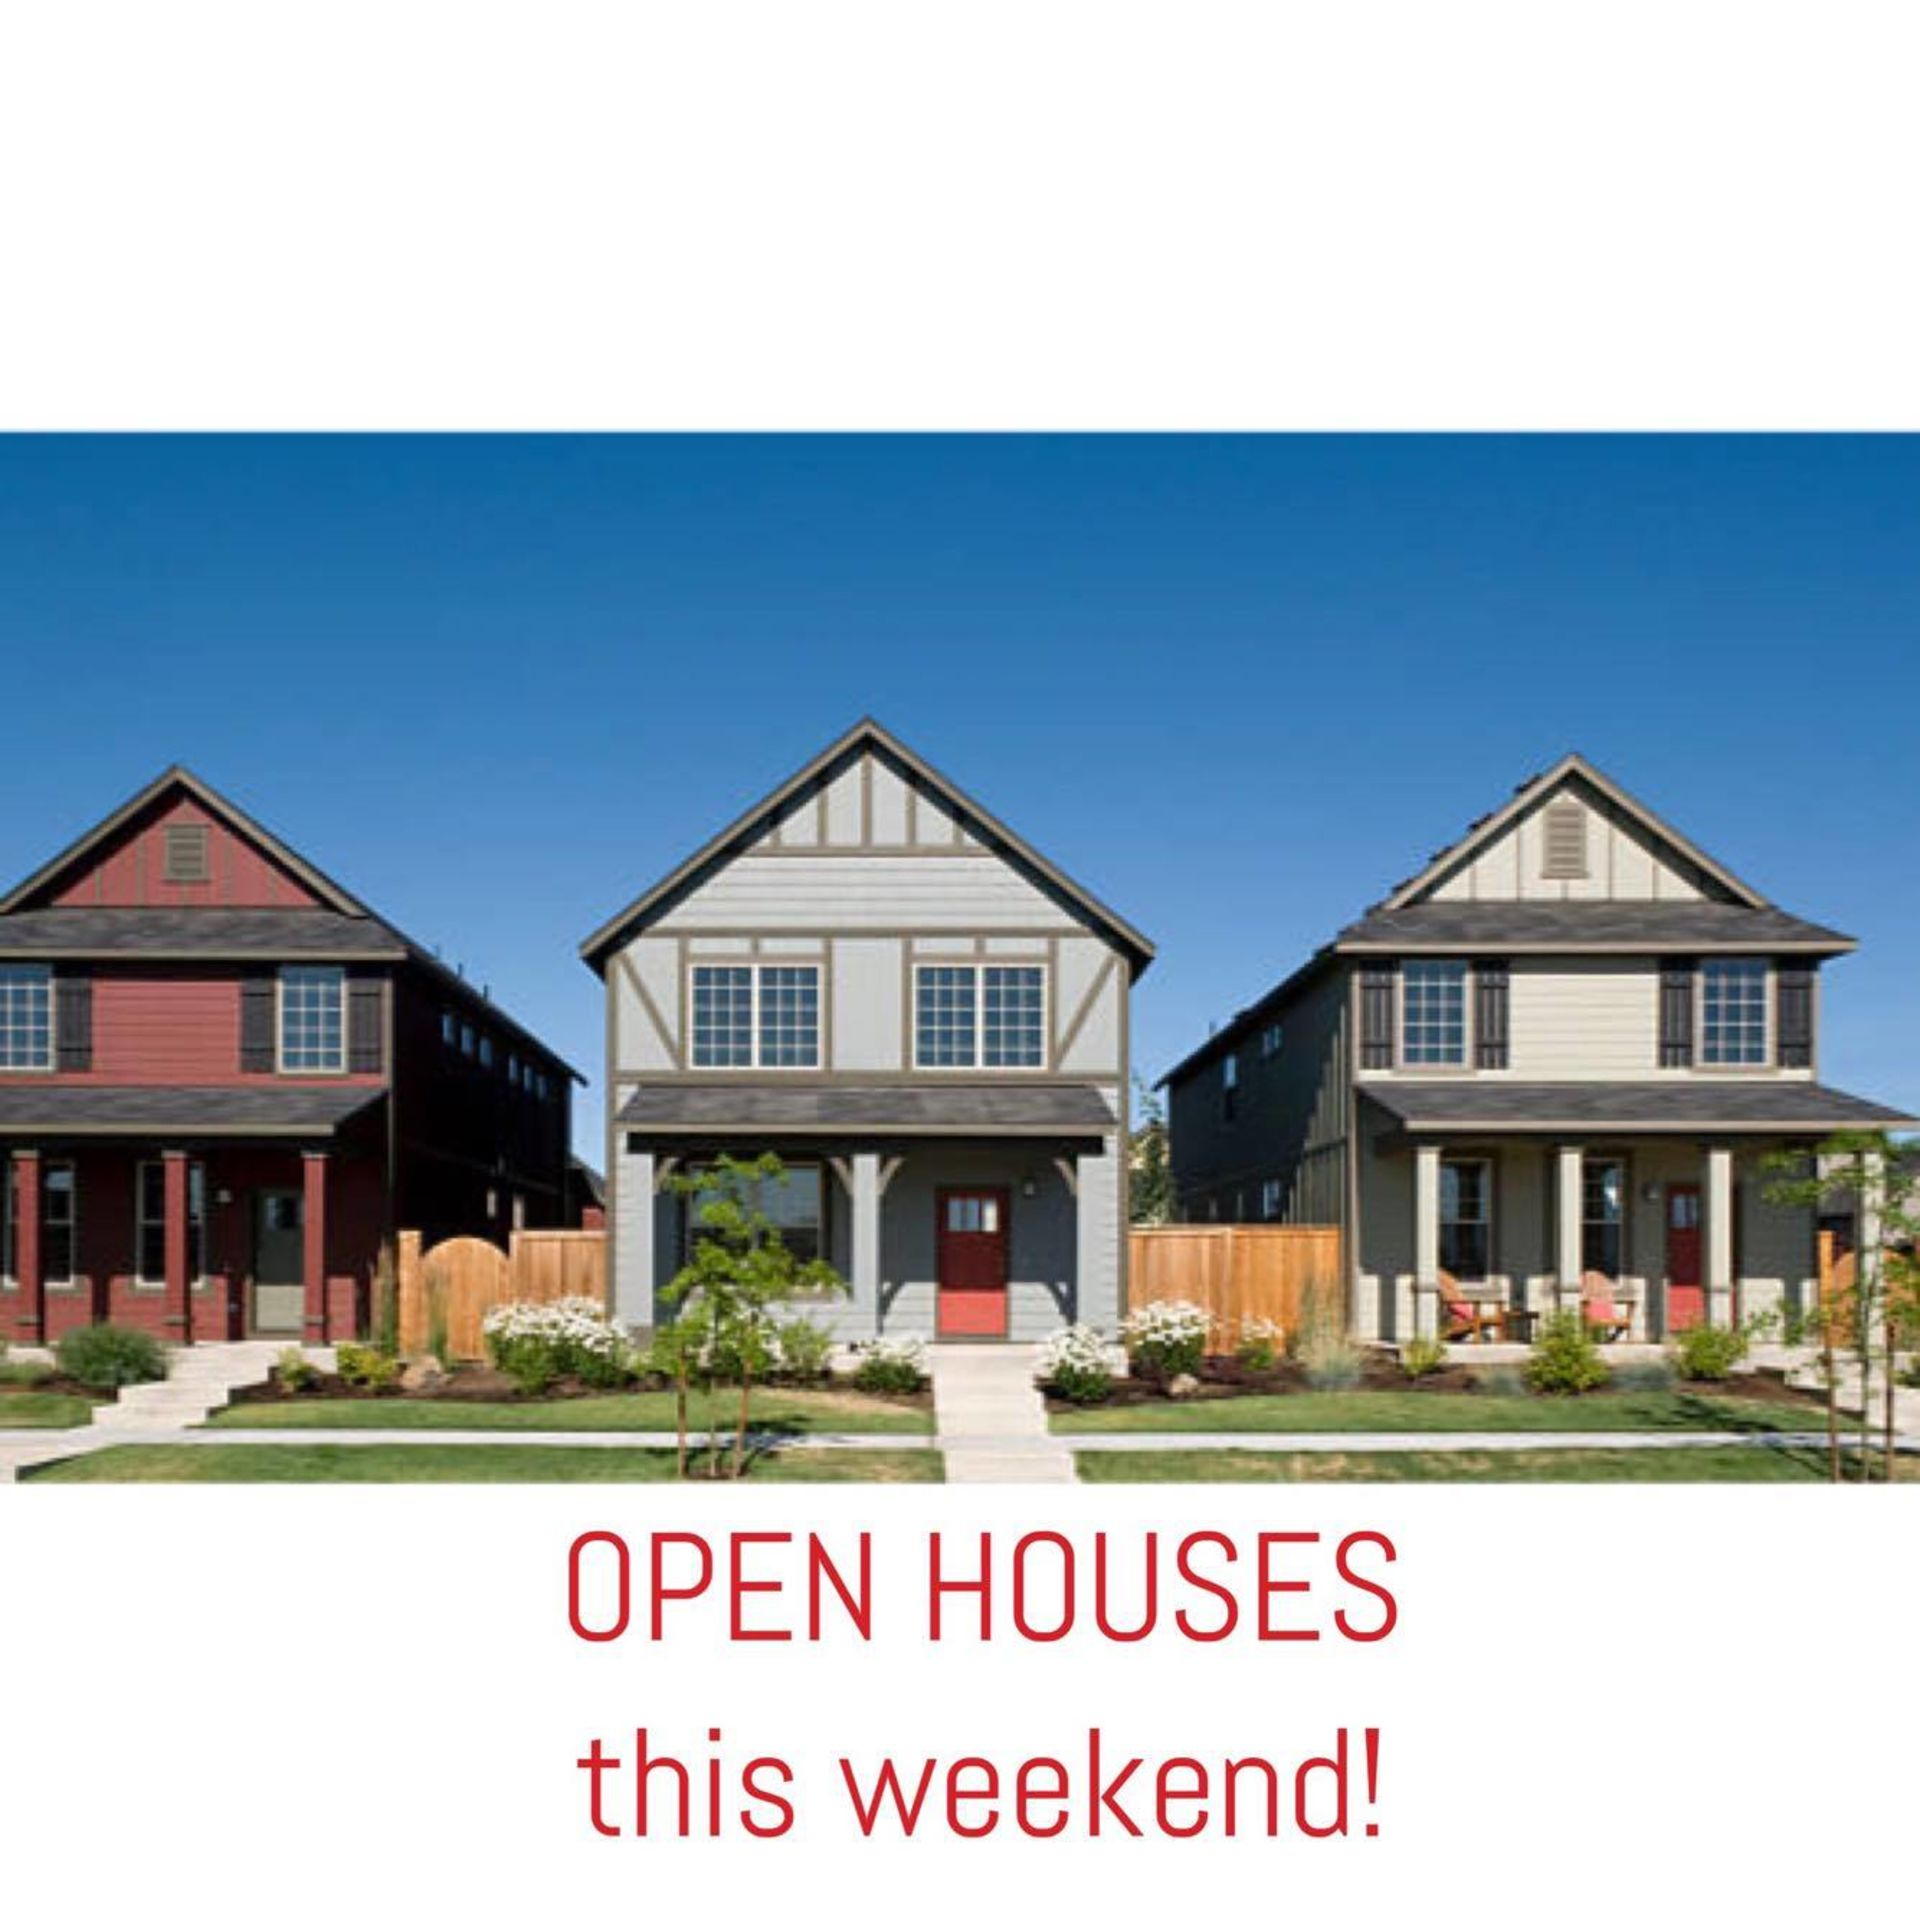 OPEN HOUSES THIS WEEKEND Nov 18/19 in WNY